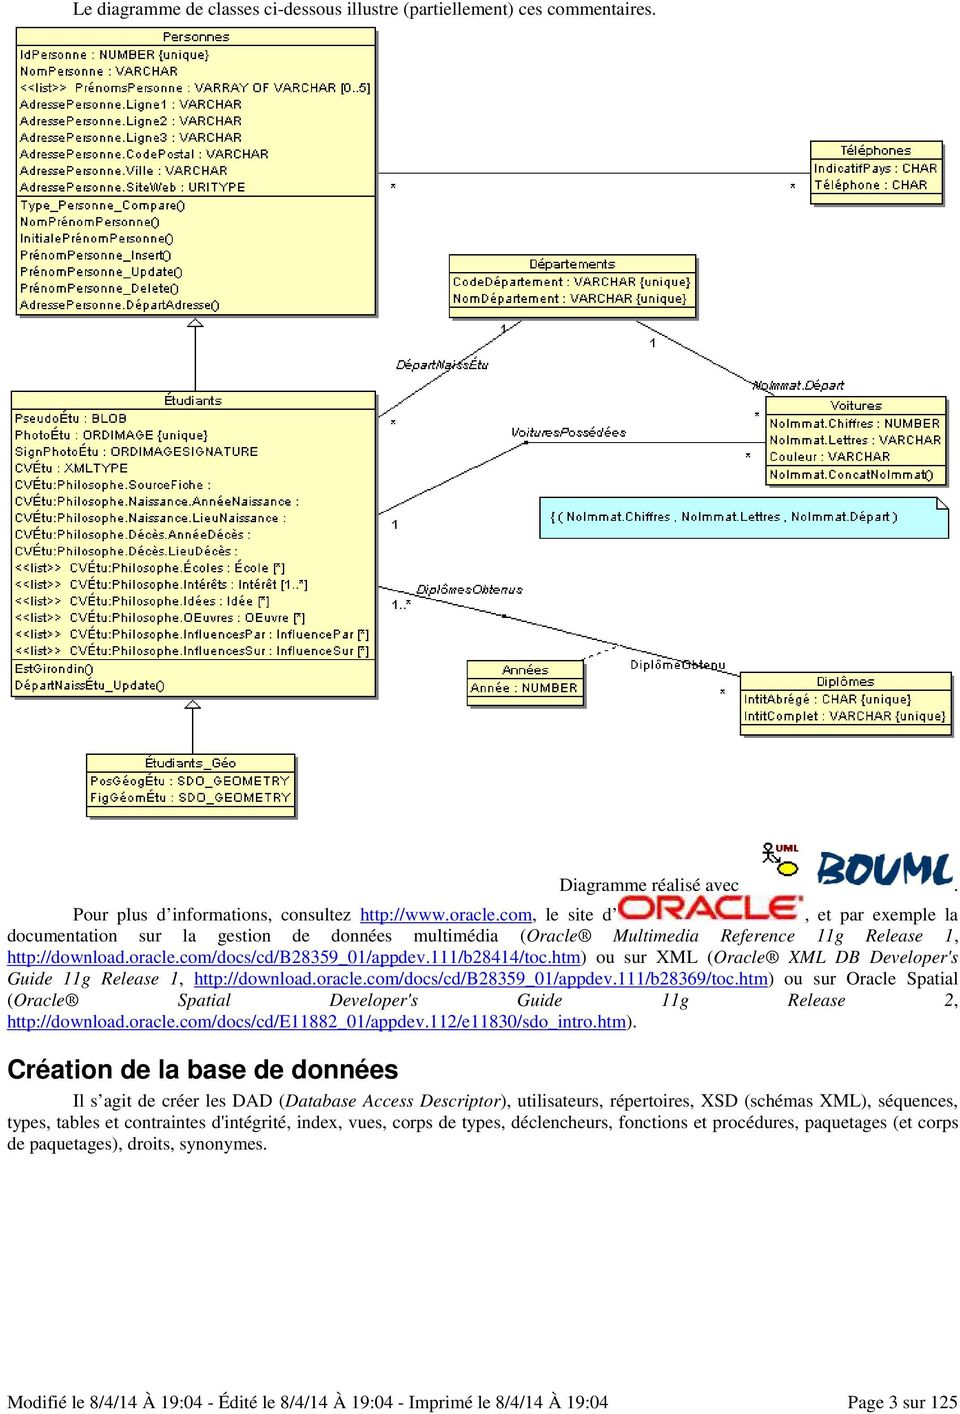 htm) ou sur XML (Oracle XML DB Developer's Guide 11g Release 1, http://download.oracle.com/docs/cd/b28359_01/appdev.111/b28369/toc.